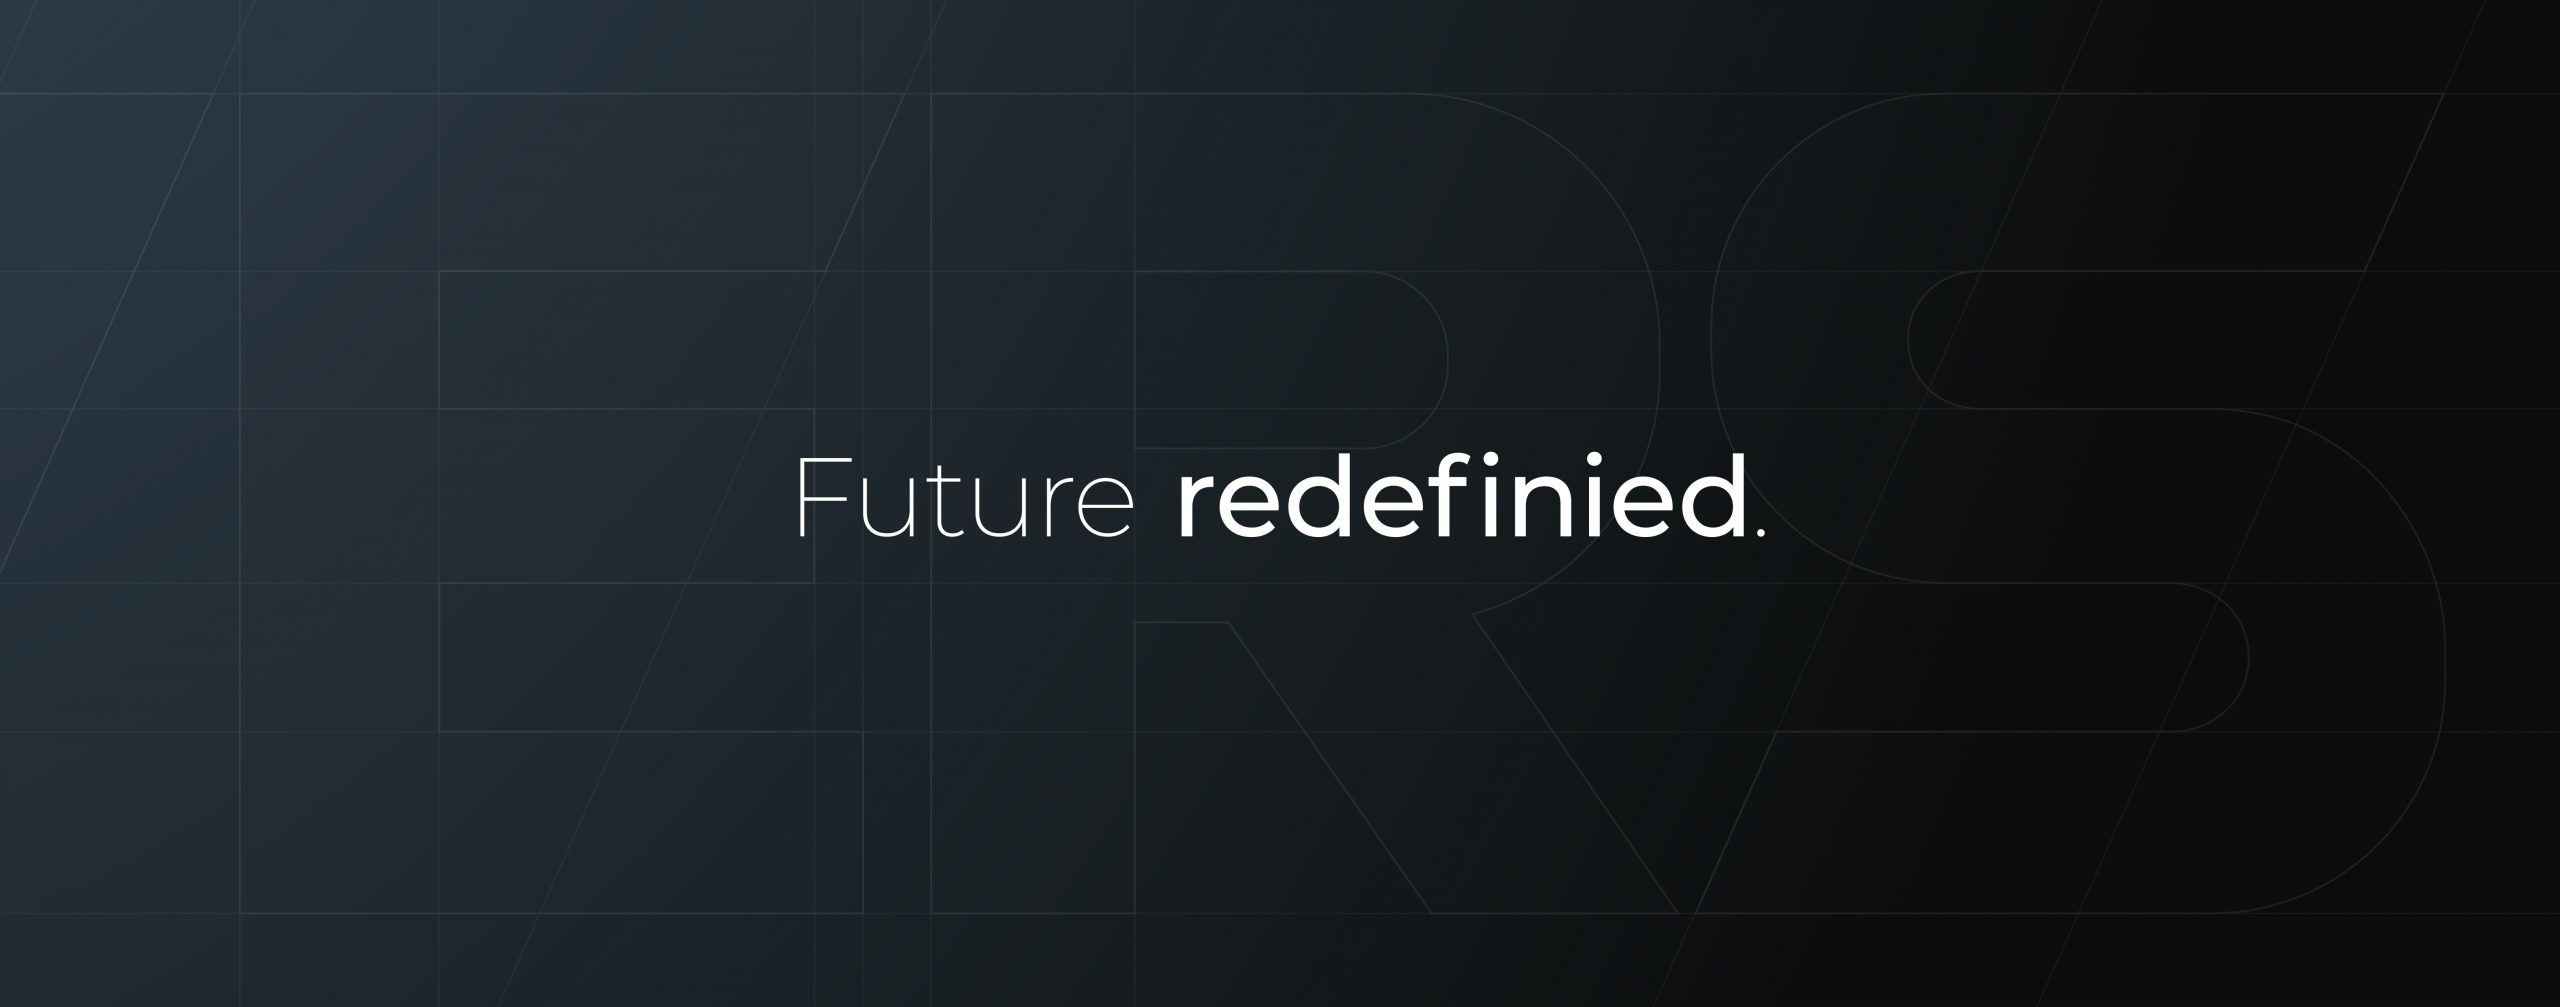 New VERS Branding, future redefined